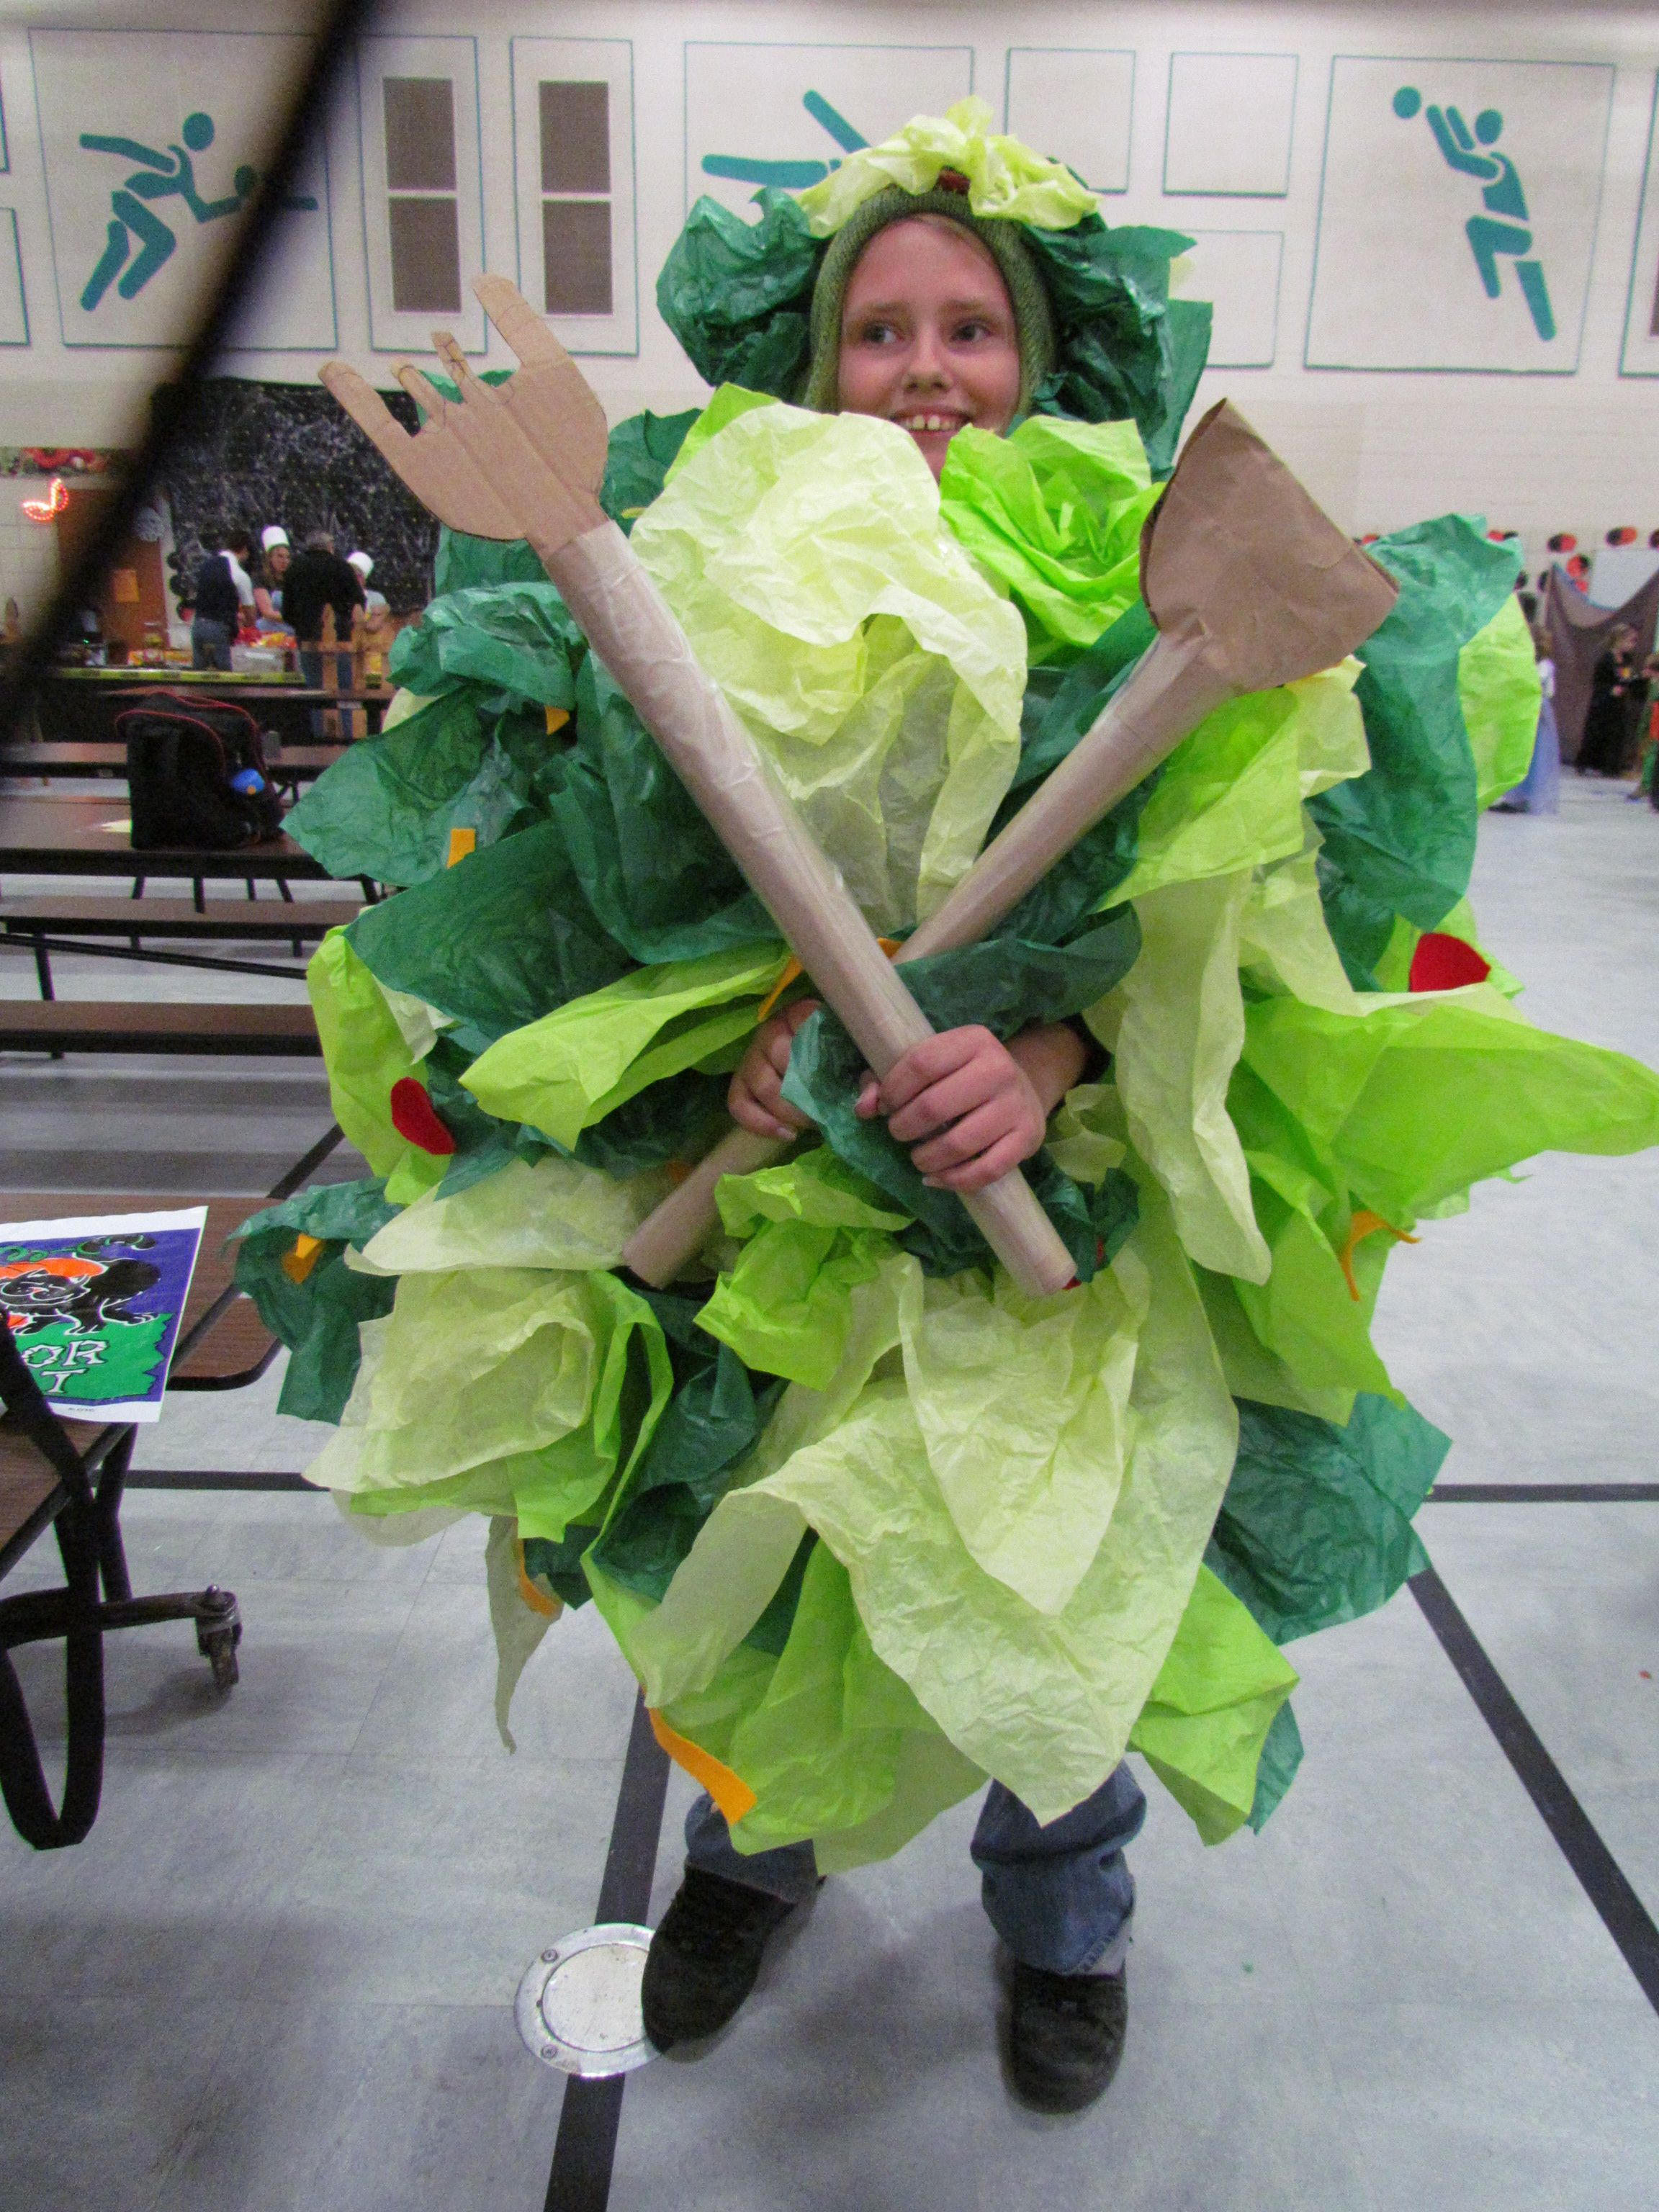 Tossed Salad Costume Won 2nd Place In Contest Card Board Box With Tissue Paper For The Lettuce Cut Out Of Felt Tomatoes Carrot Shreds